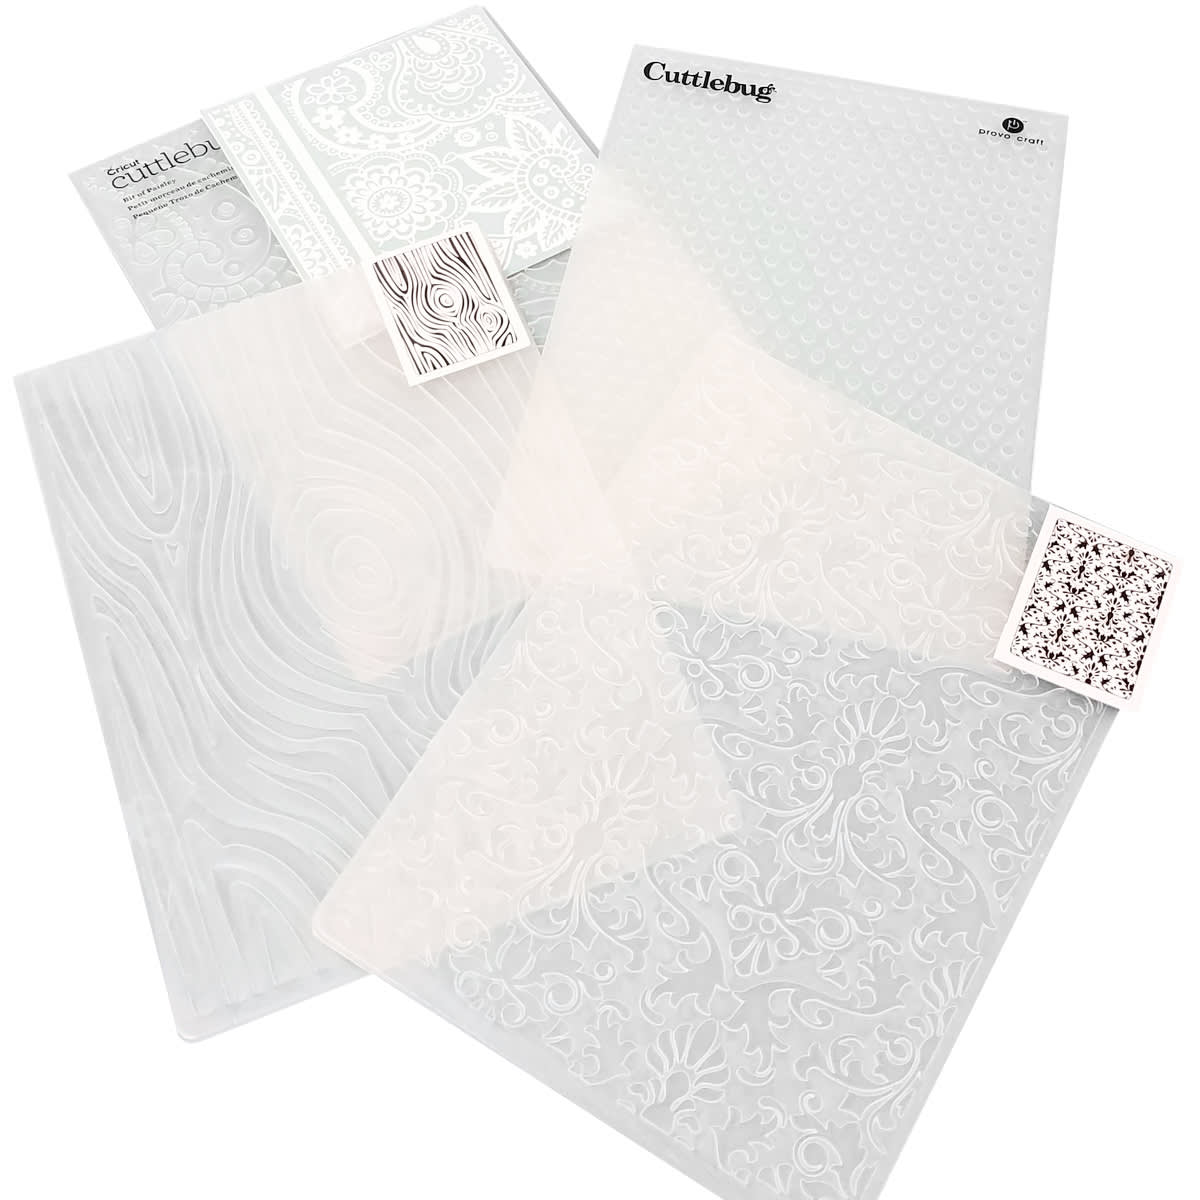 You can find embossing folders in almost any design you can think of